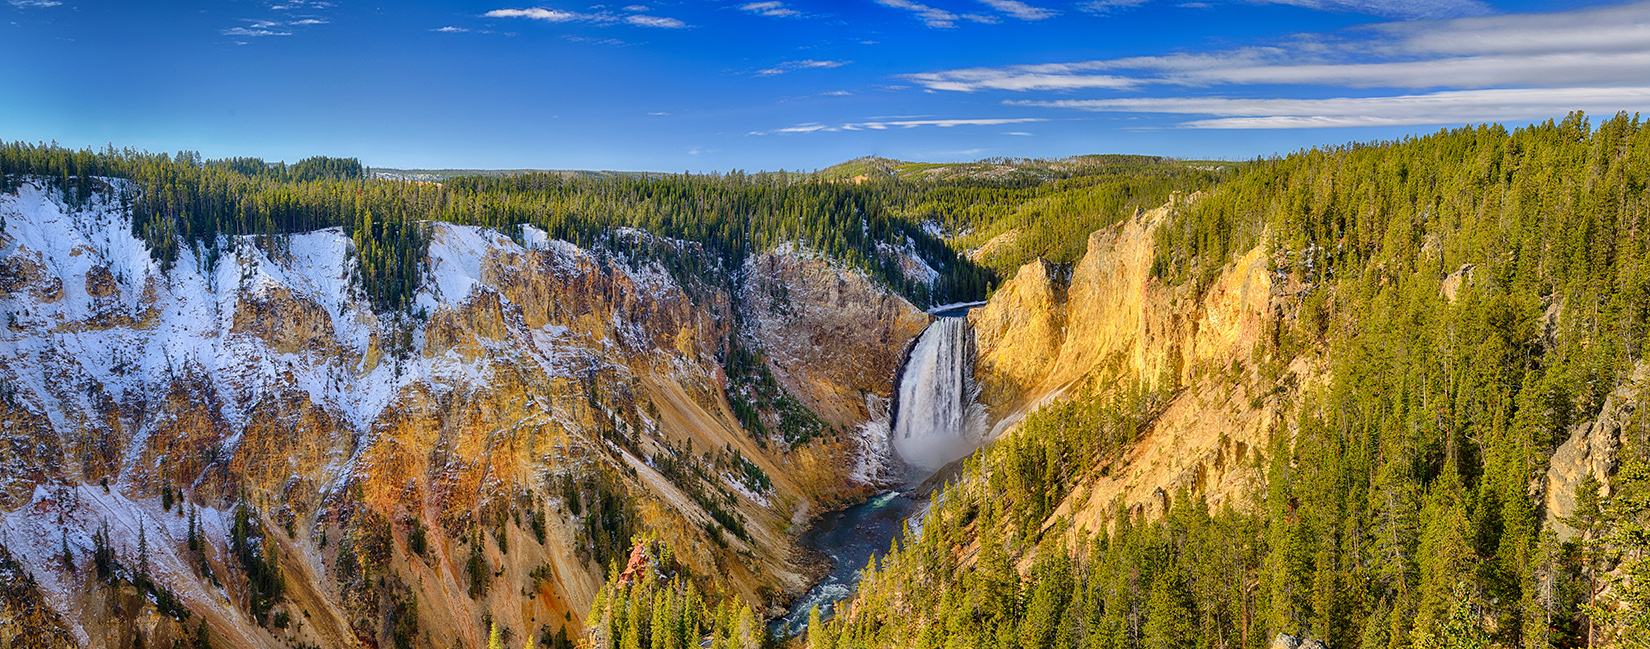 Yellowstone Grand Canyon Panorama From Lookout Point